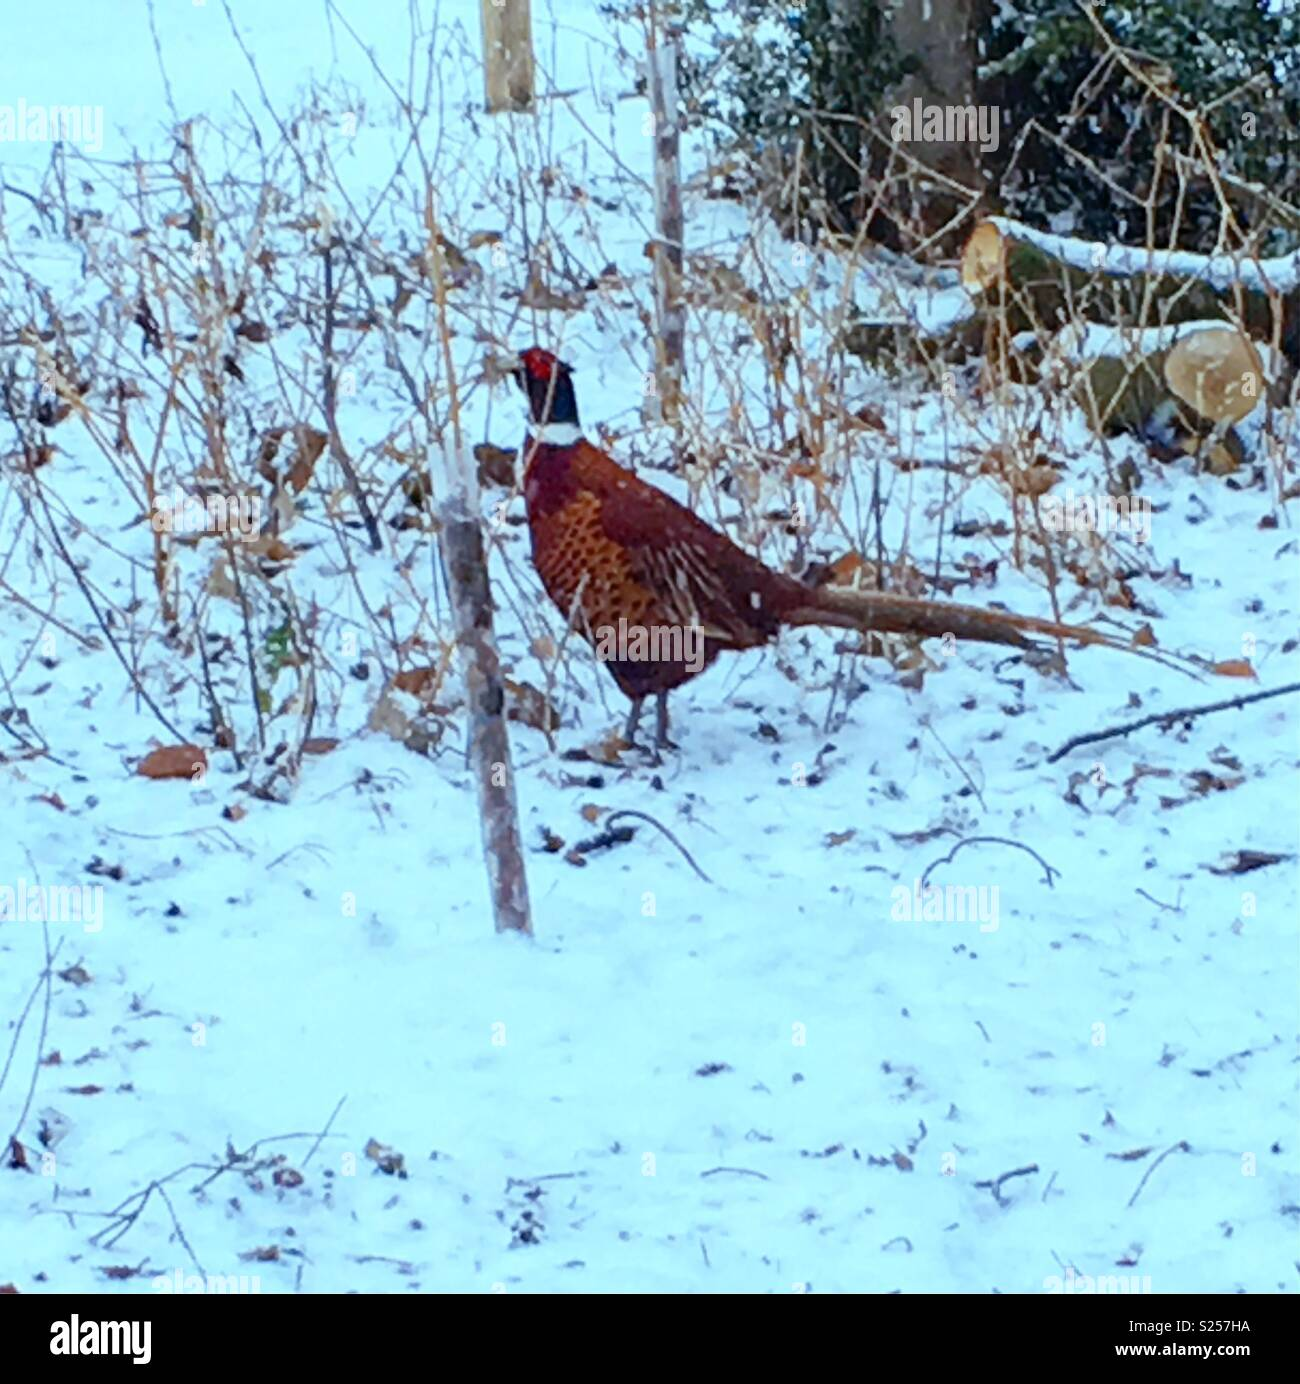 Pheasant Snow Stock Photos & Pheasant Snow Stock Images - Alamy